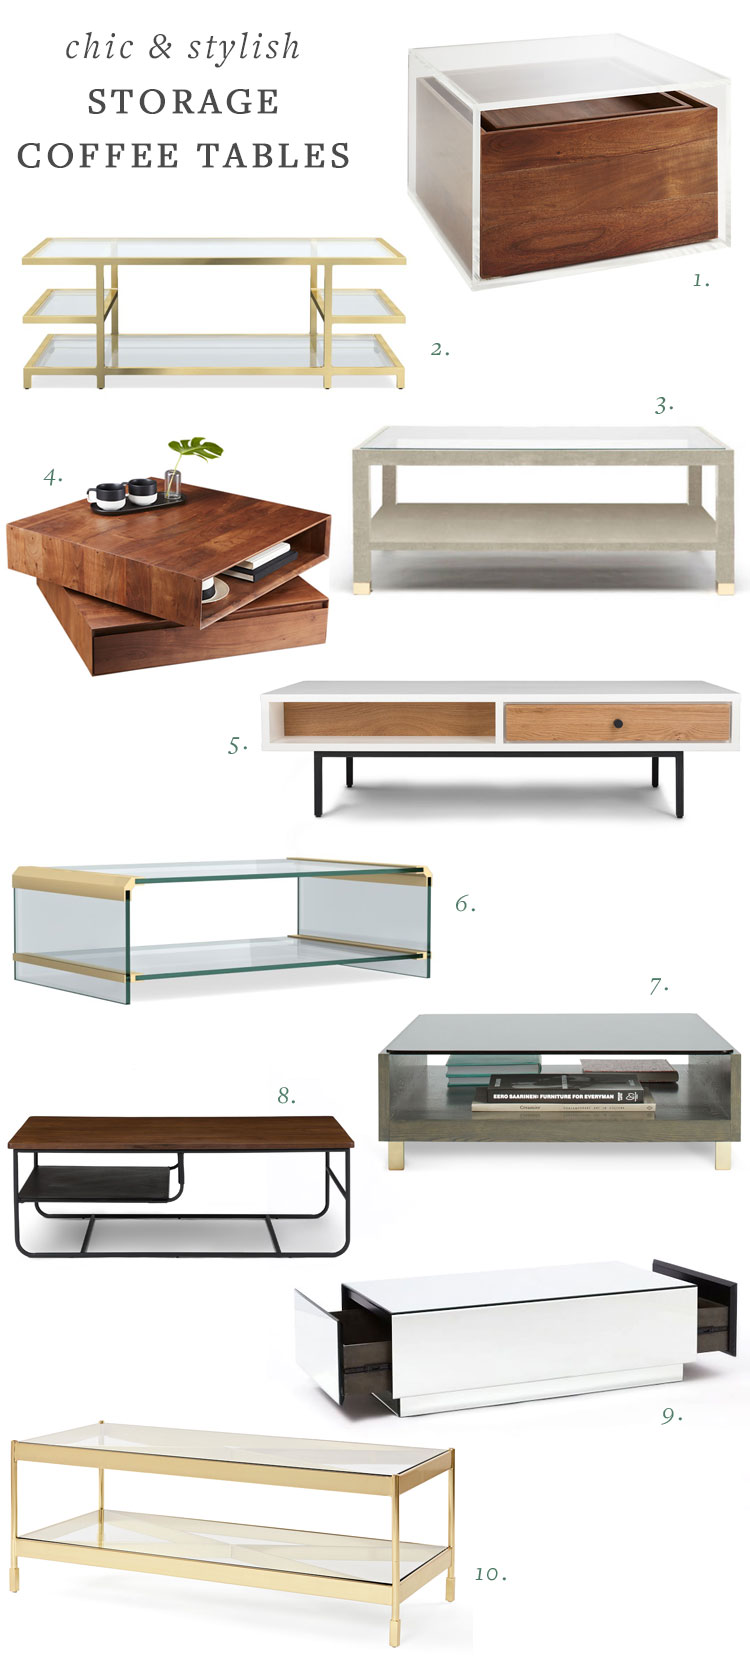 my search for a stylish coffee table with storage for my small space. #smallspaces #storage #tipsandtricks #coffeetable